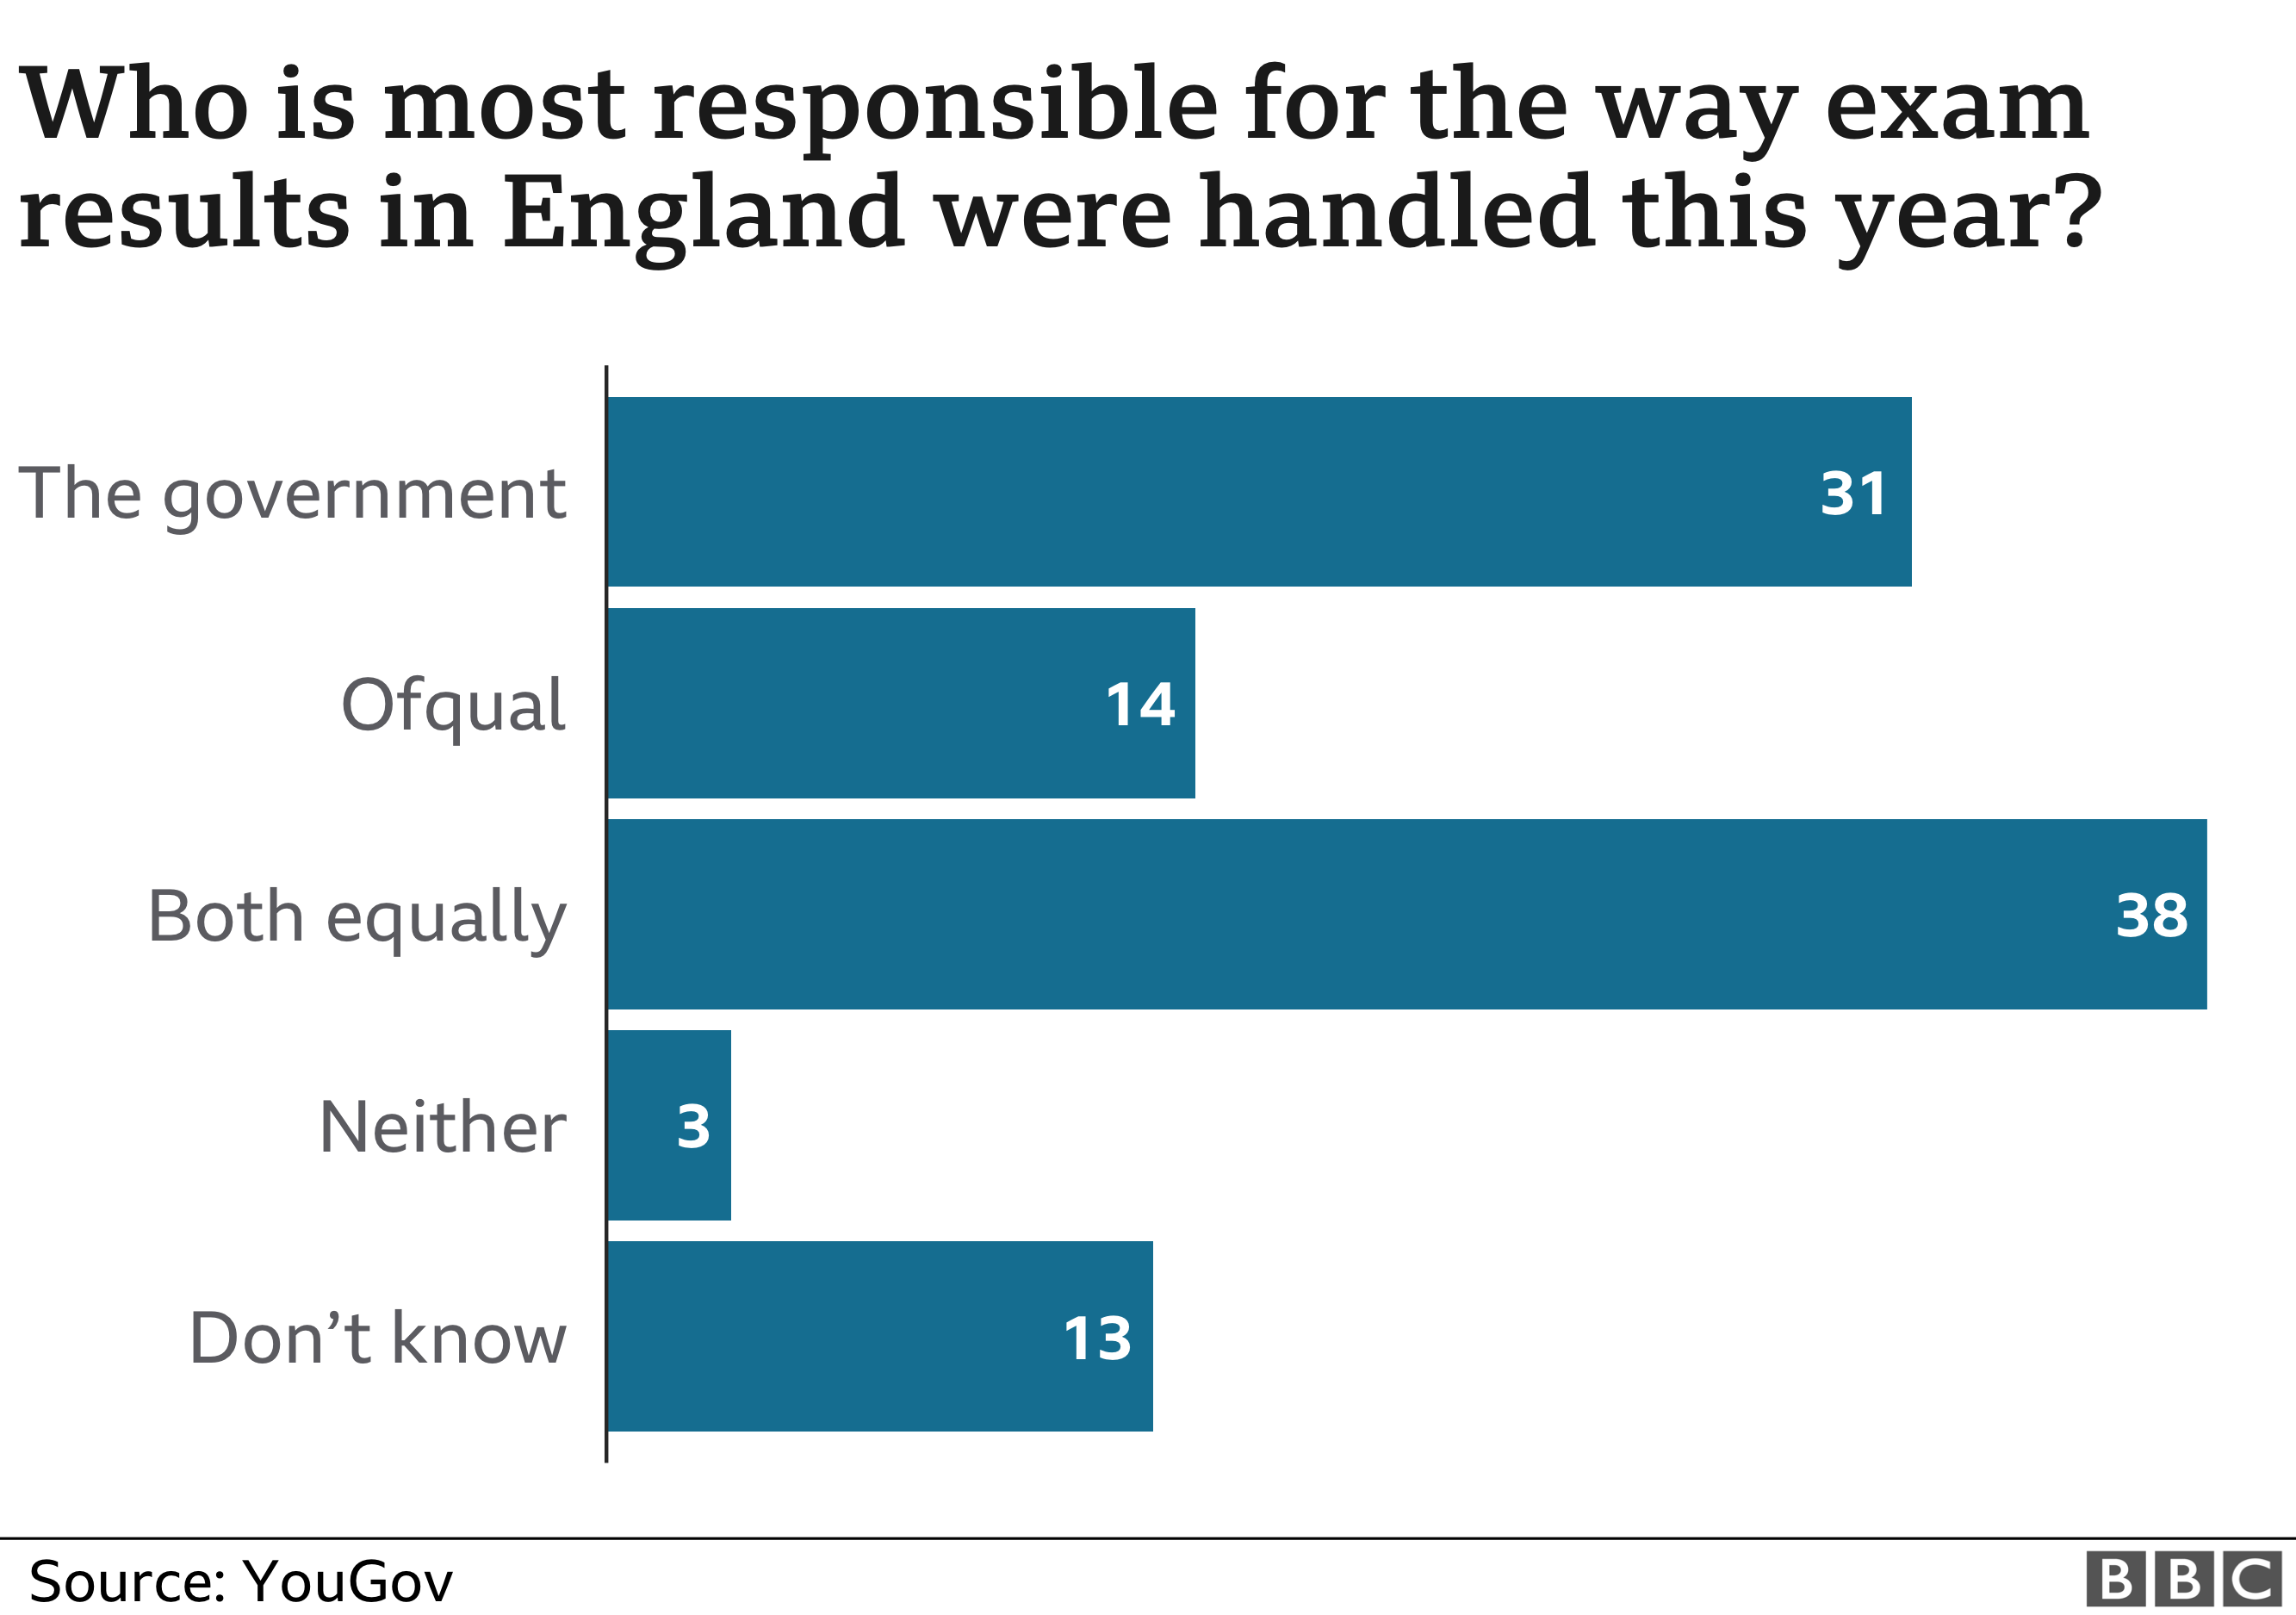 Who is responsible for the way exam results in England were handled this year?